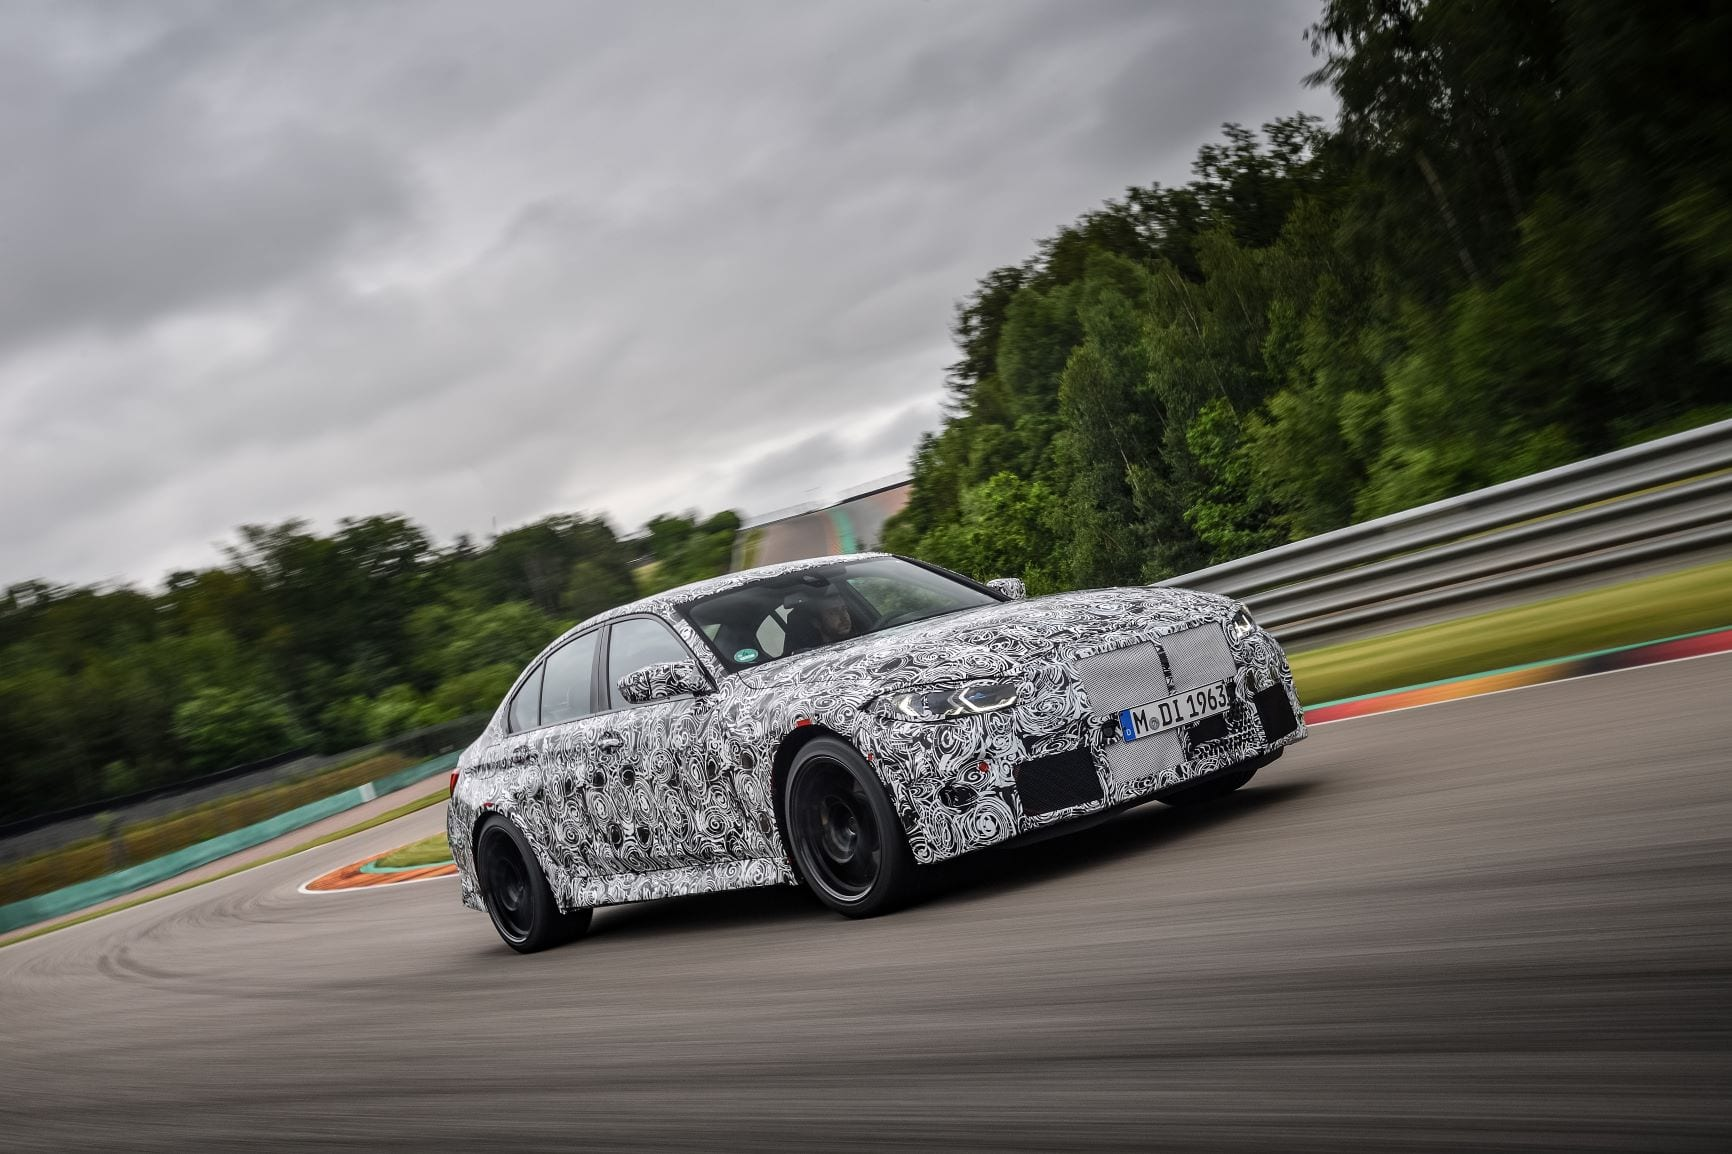 The new BMW M3 being tested under wraps at the Nurburgring.